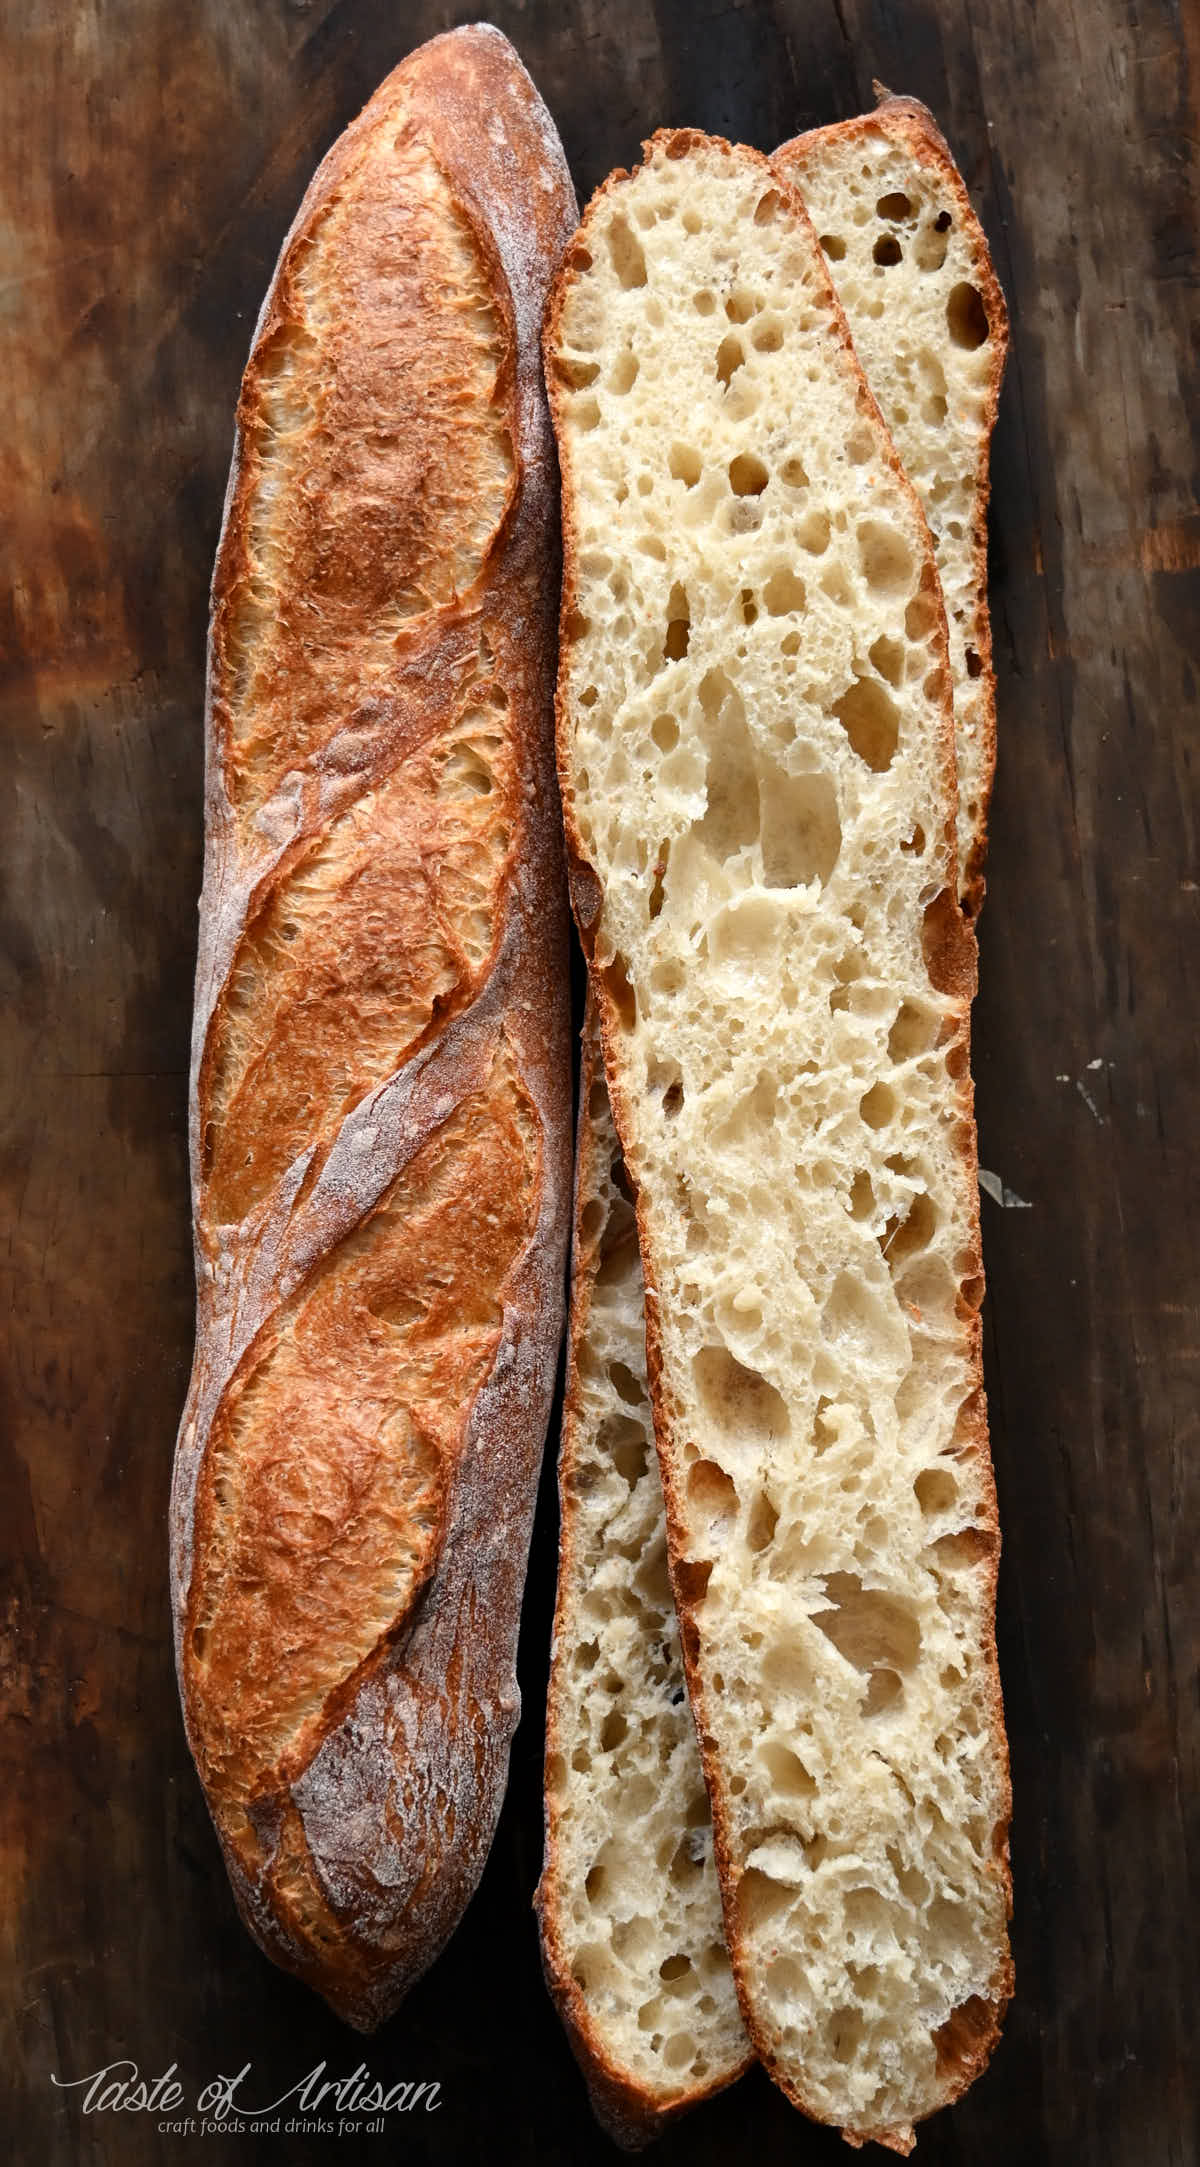 Two homemade French baguettes on a baking sheet, one cut open in half showing airy crumb.